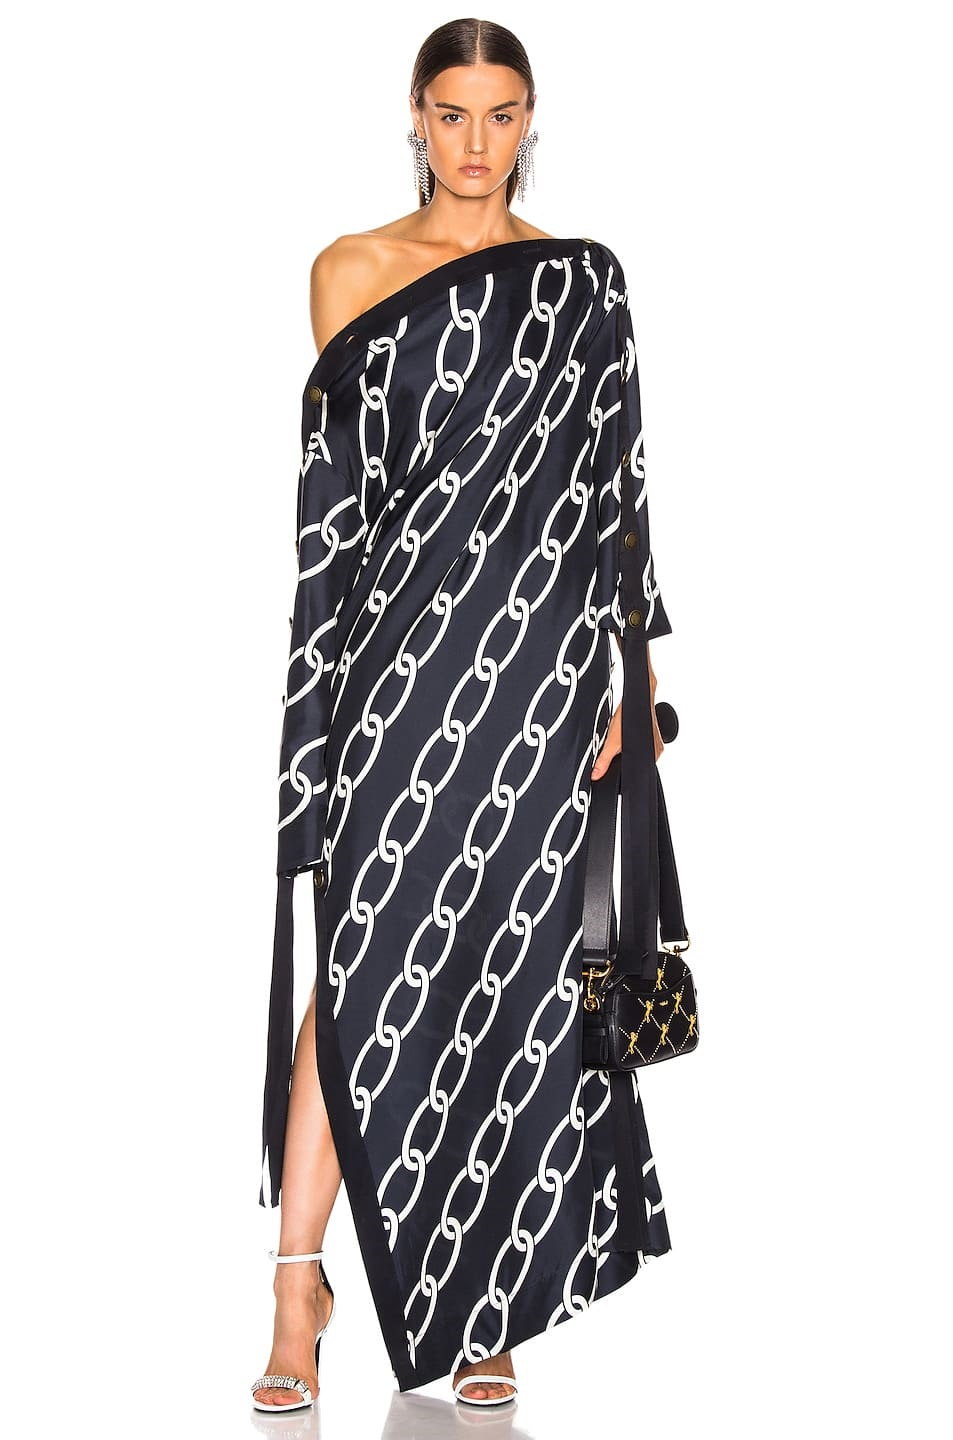 How to Make Bohemian Style Chic and Modern, caftans and kimonos, monse chain link caftan